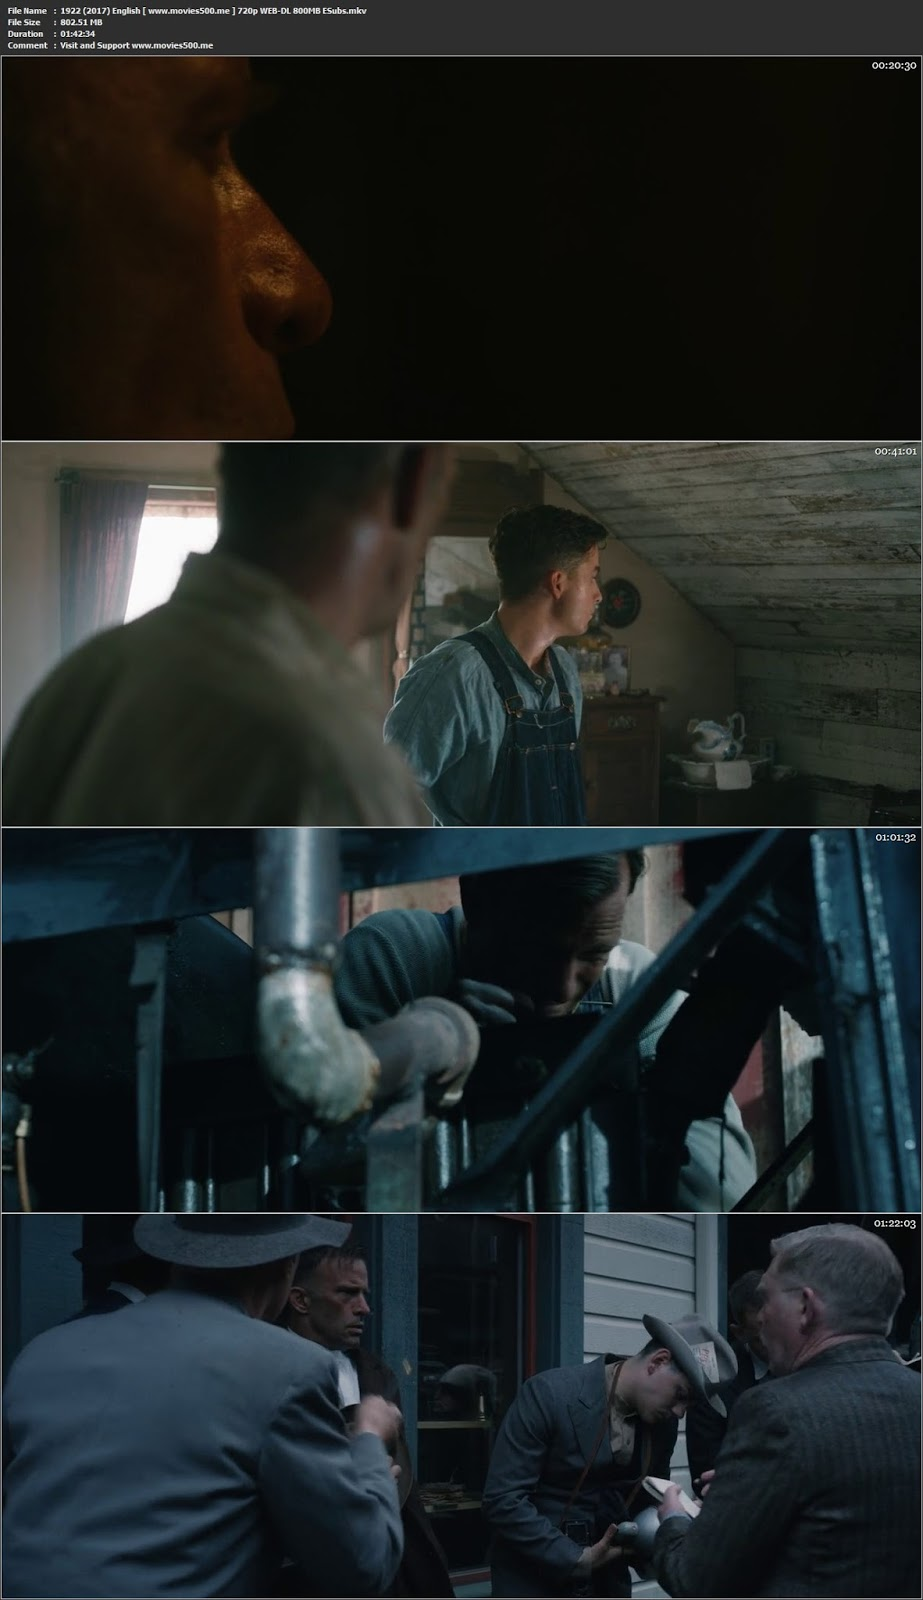 1922 (2017) English Full Movie WEB DL 720p ESubs at softwaresonly.com